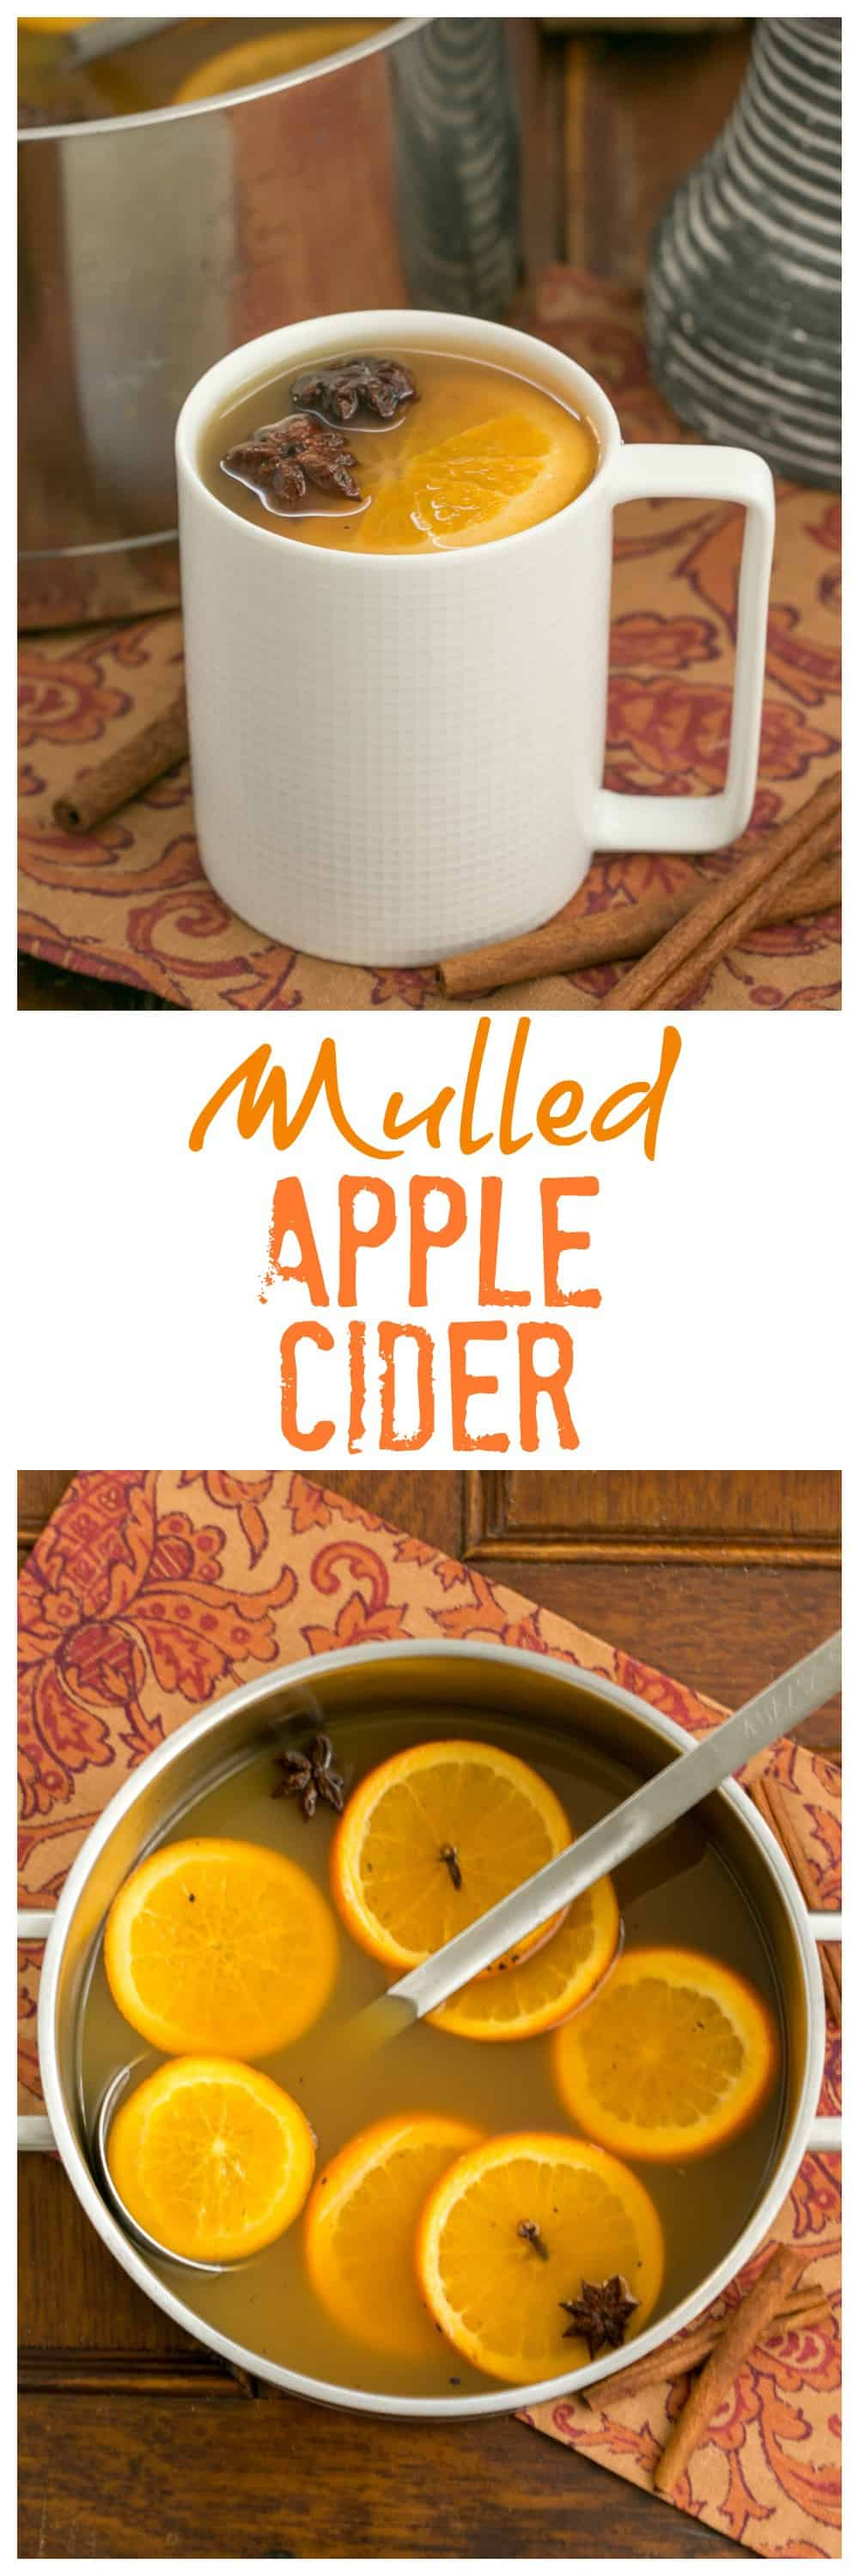 Mulled Apple Cider - Hot cider flavored with vanilla, oranges and warm autumn spices. Perfect for holiday parties, apres ski parties or anytime you need to warm your soul. #cider #mulledcider #applecider